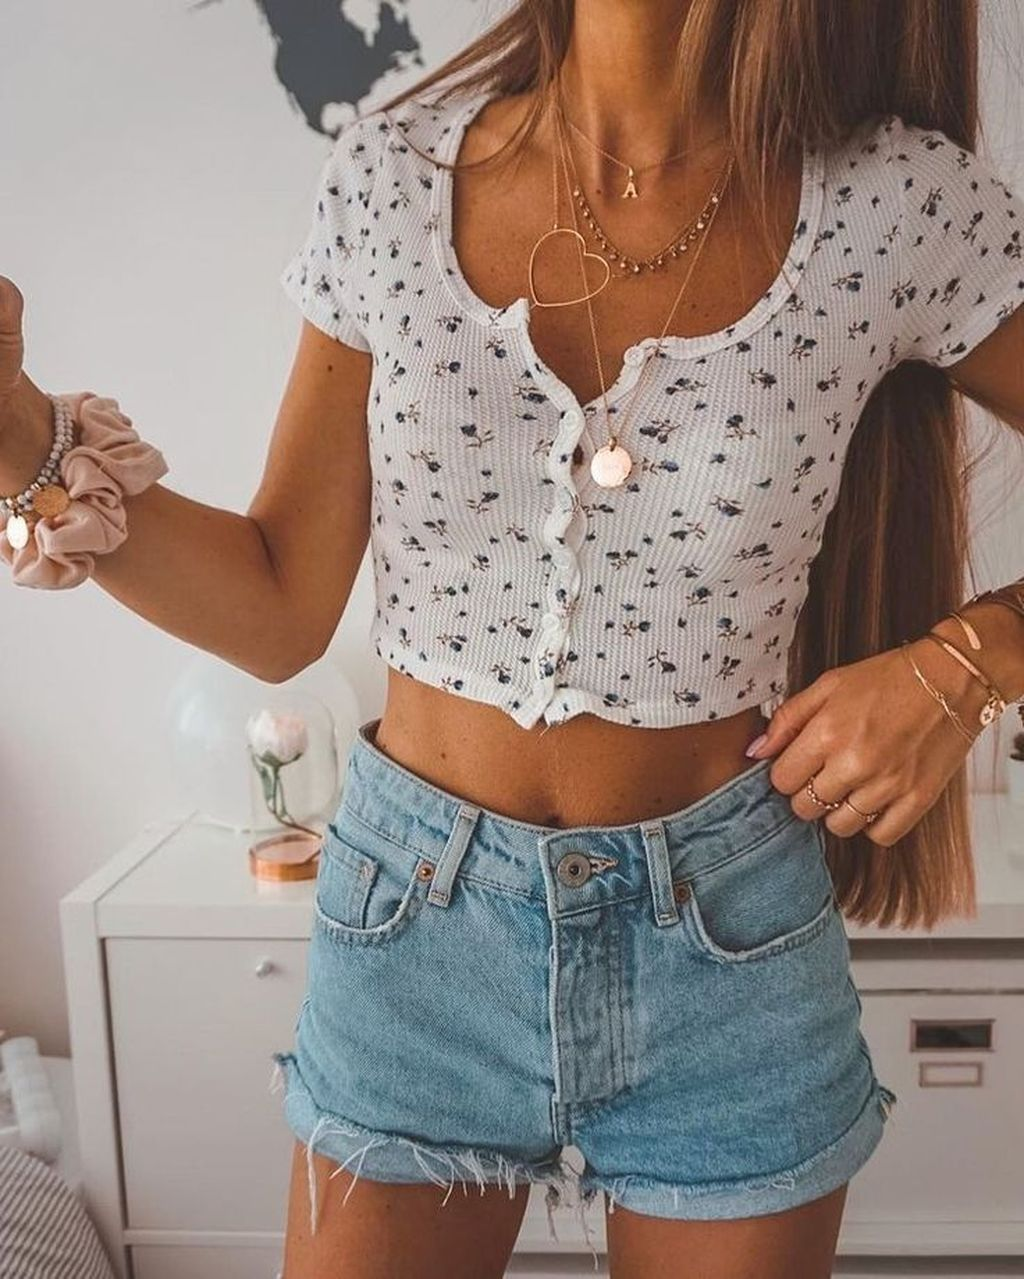 43 Hottest Denim Summer Outfits Ideas To Inspire Yourself